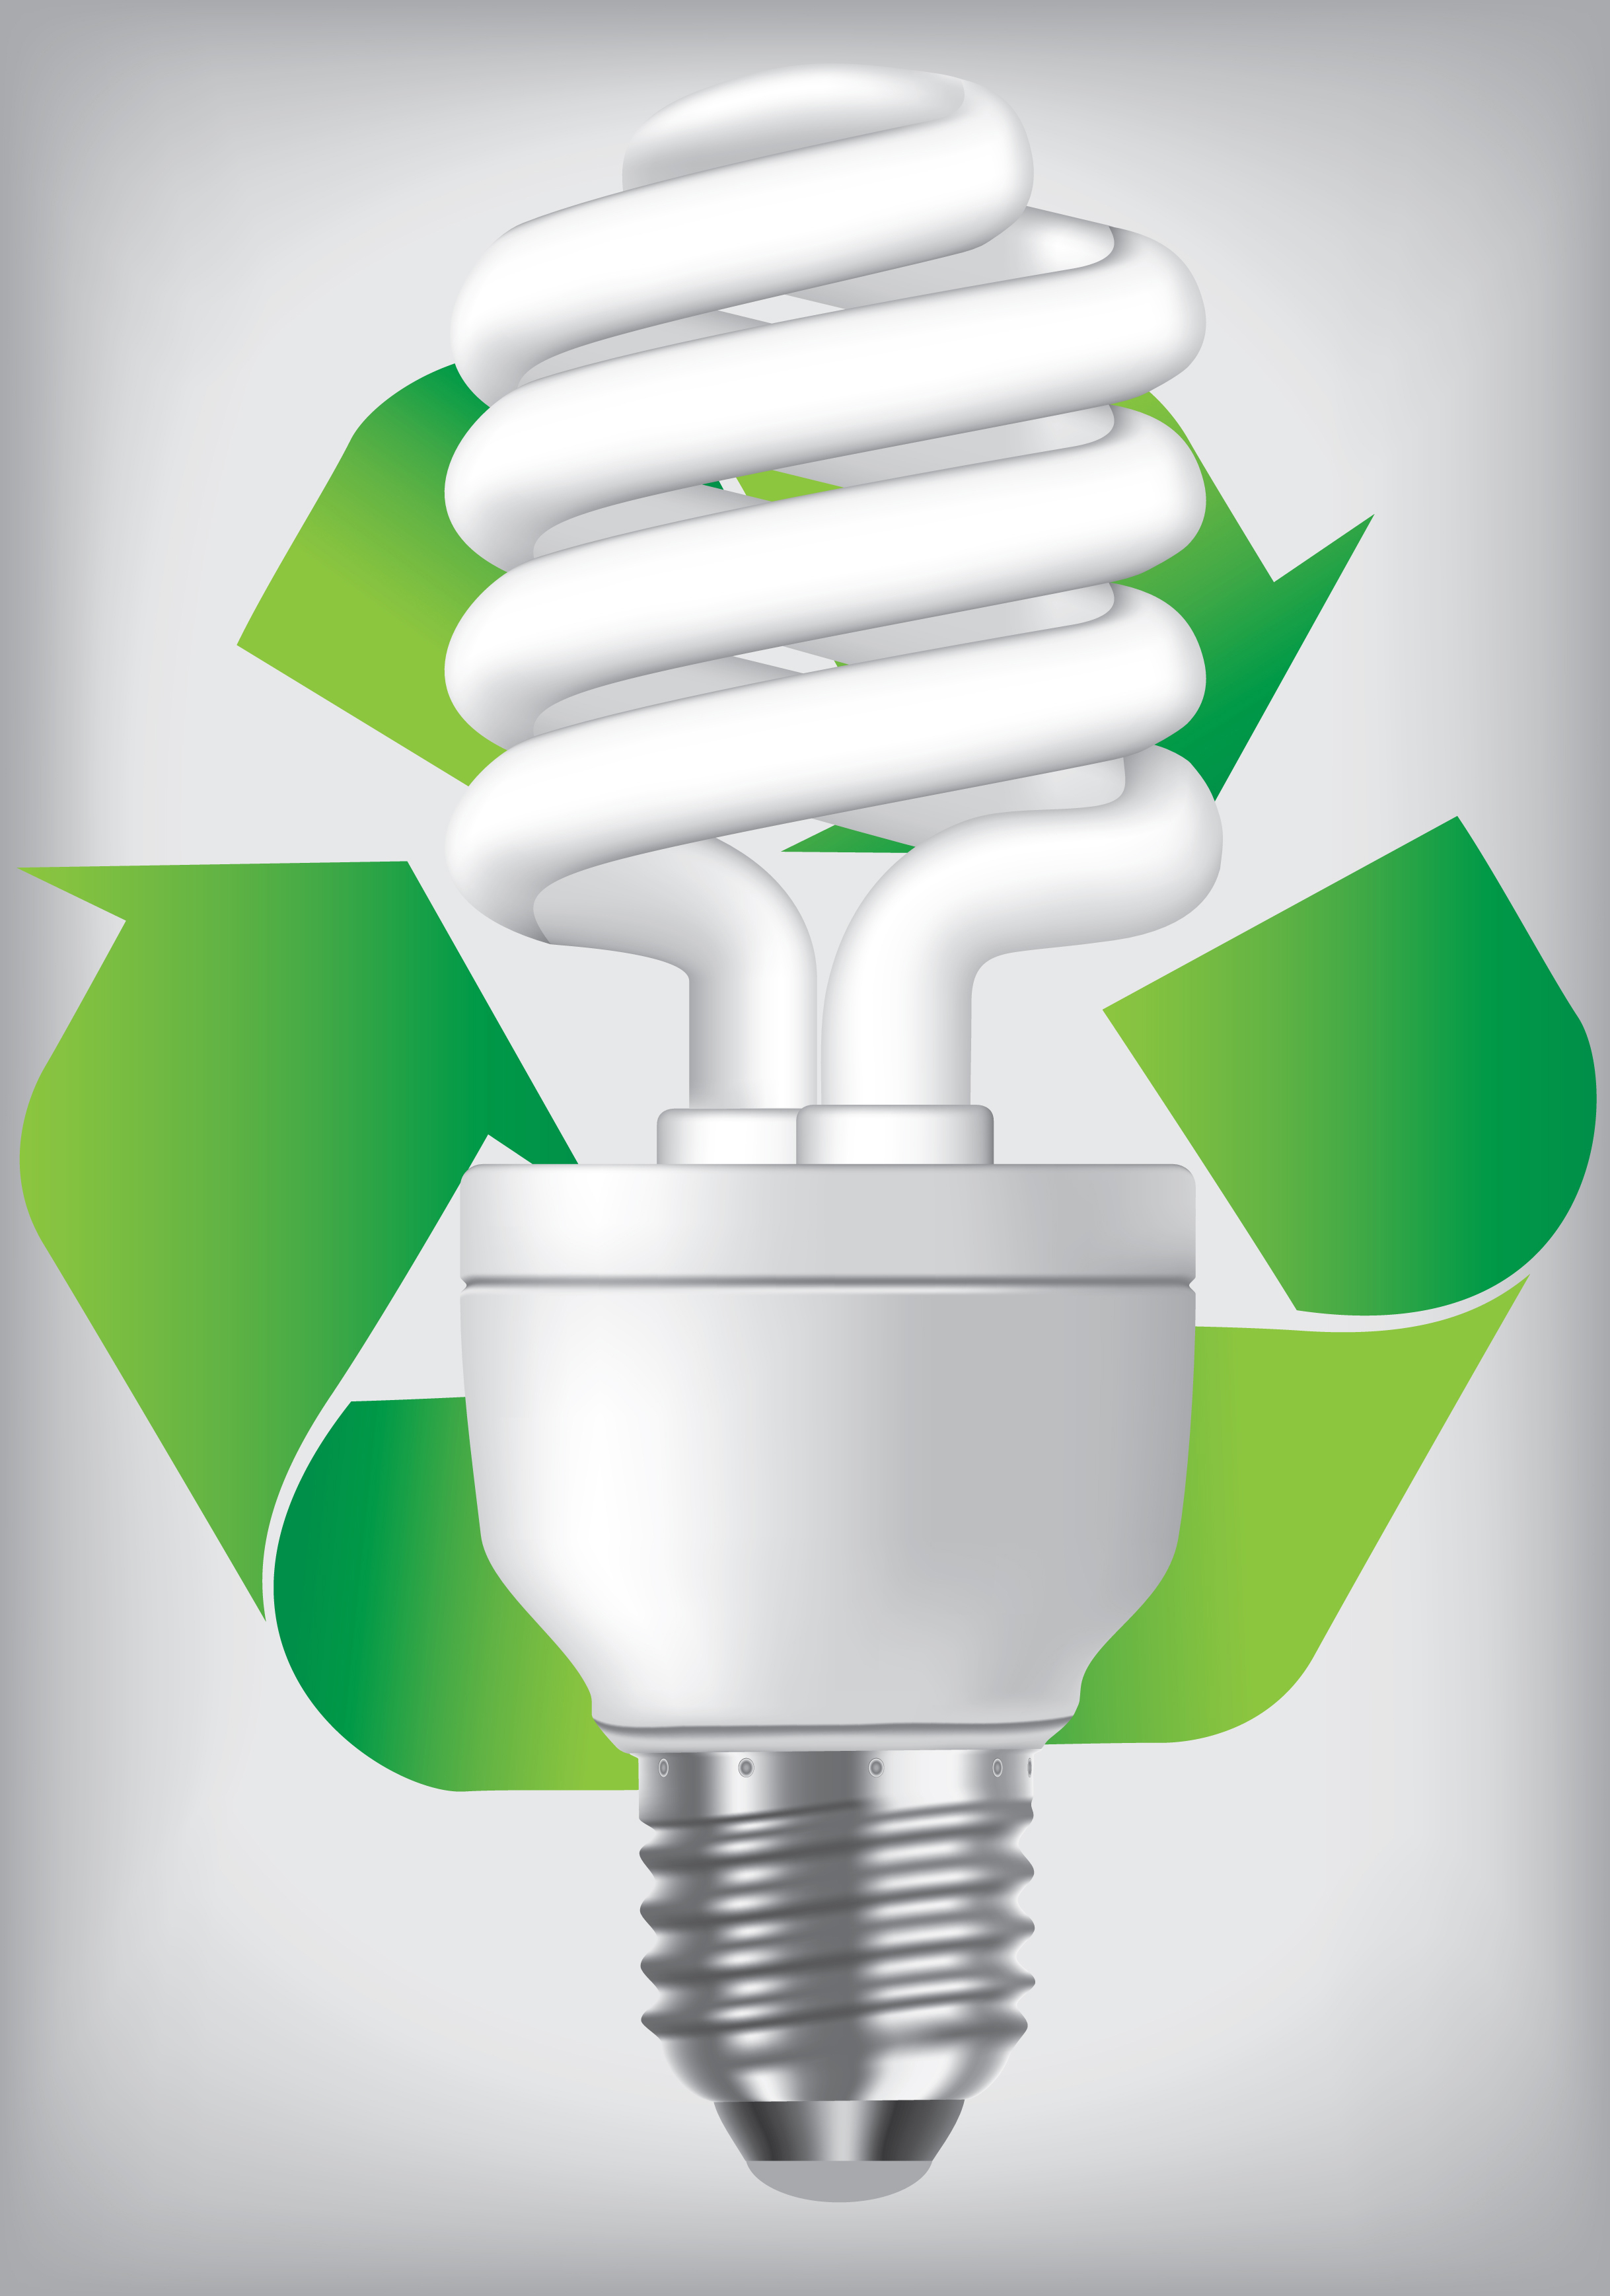 Proper Disposal Of Fluorescent Lamps, HID Lamps, Capacitors, And Ballasts  Is Crucial To The Environment. Many Lamps Contain Mercury, And Older  Ballasts And ...